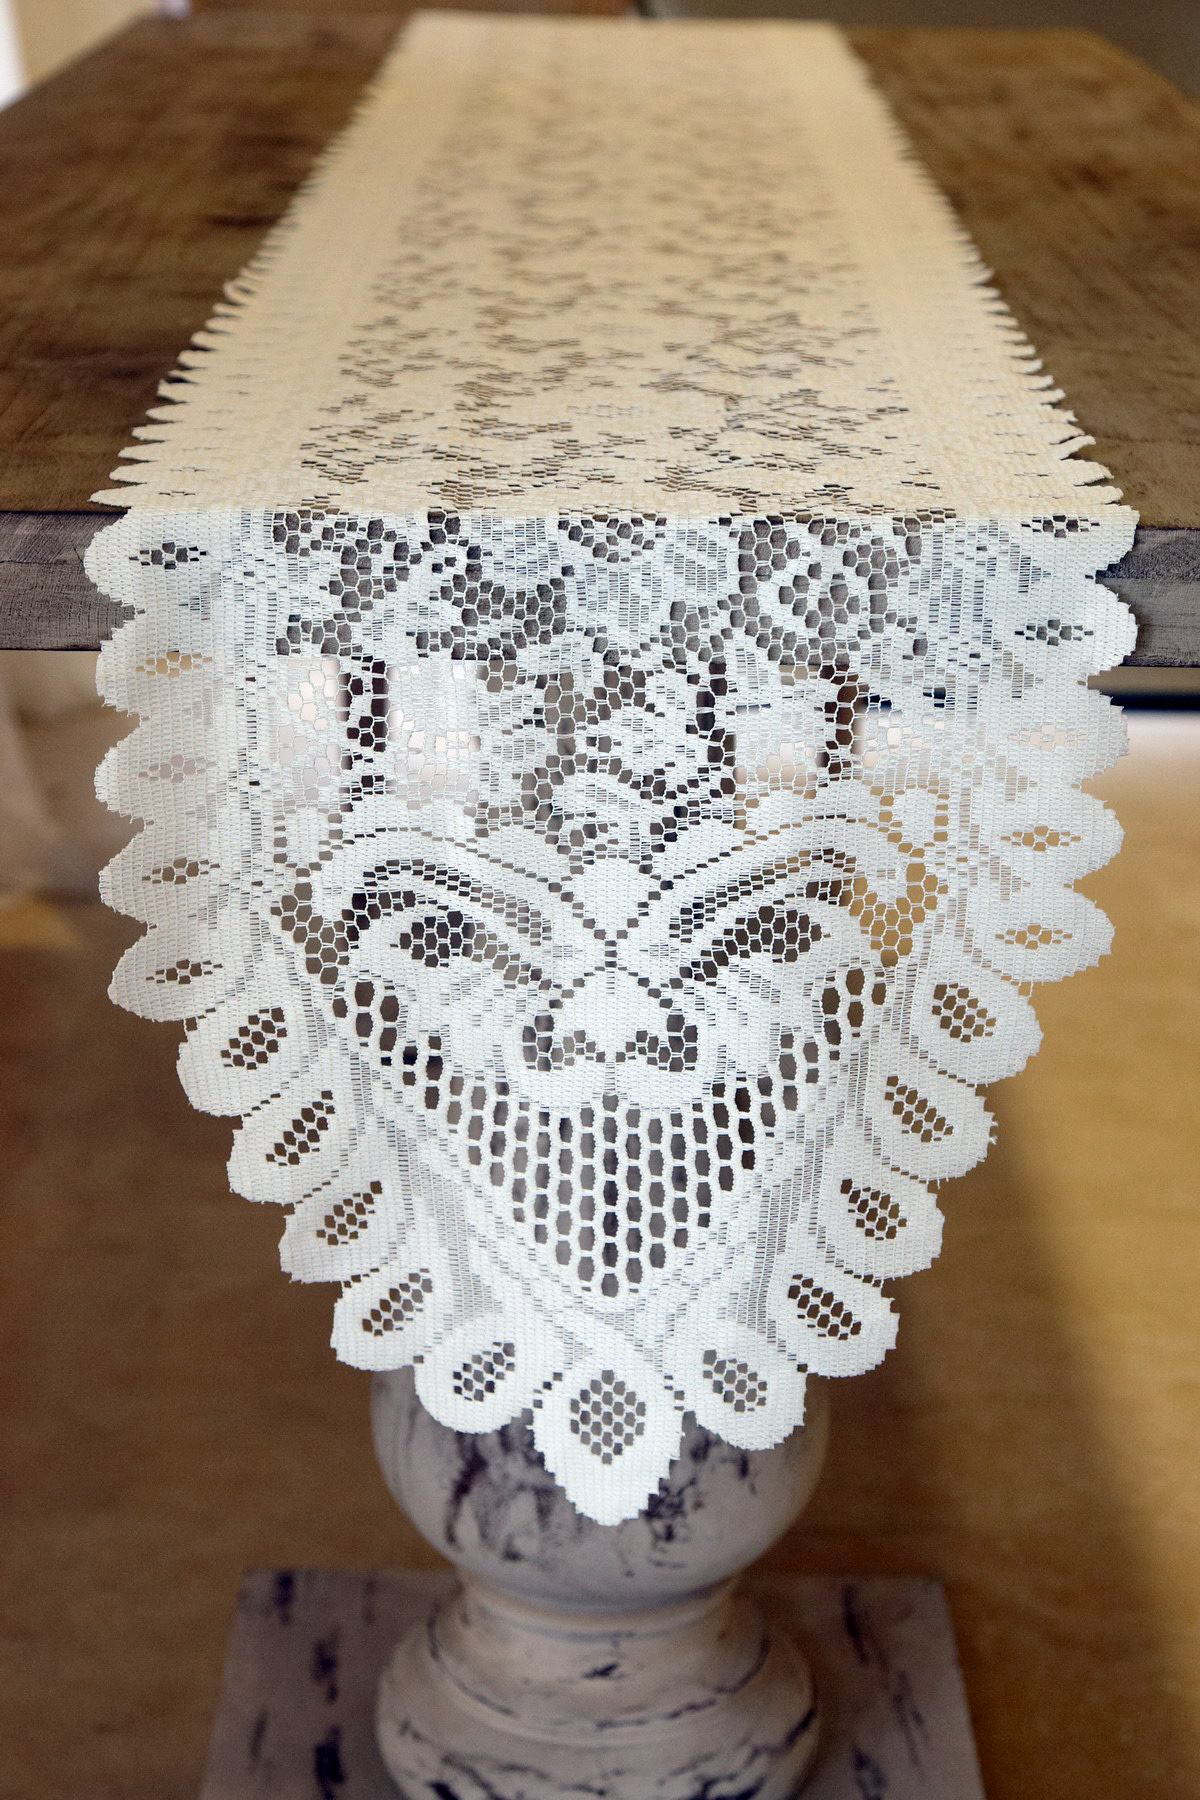 Dining Table Runners | Lace Table Runners | Burlap Table Runners with Lace